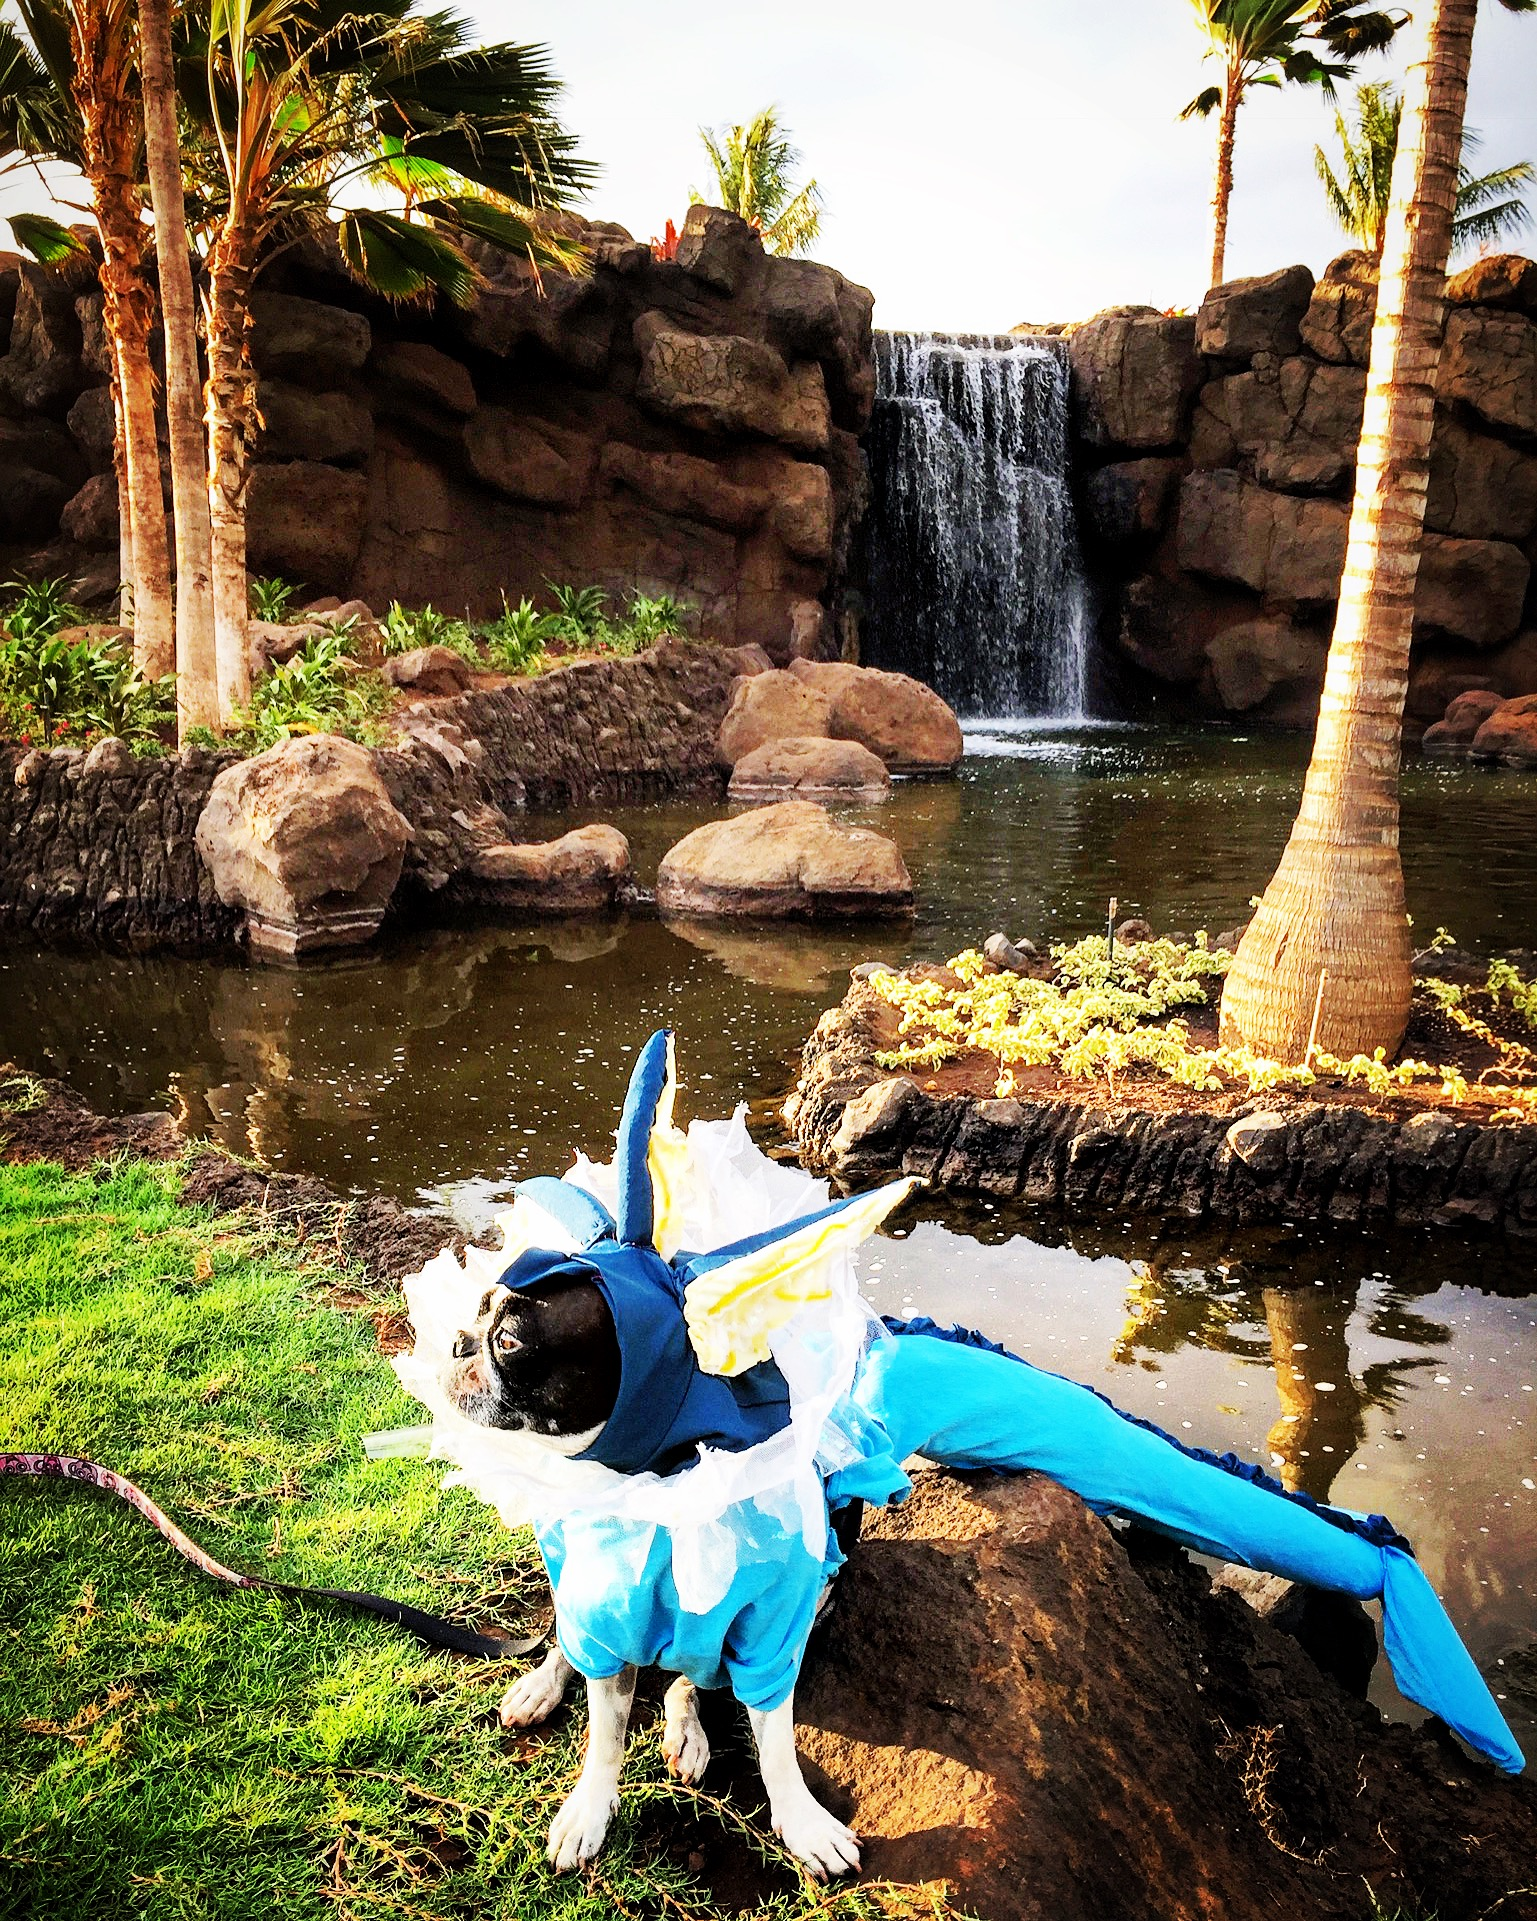 Beatrix the Boston terrier as a Vaporeon from Pokémon Go